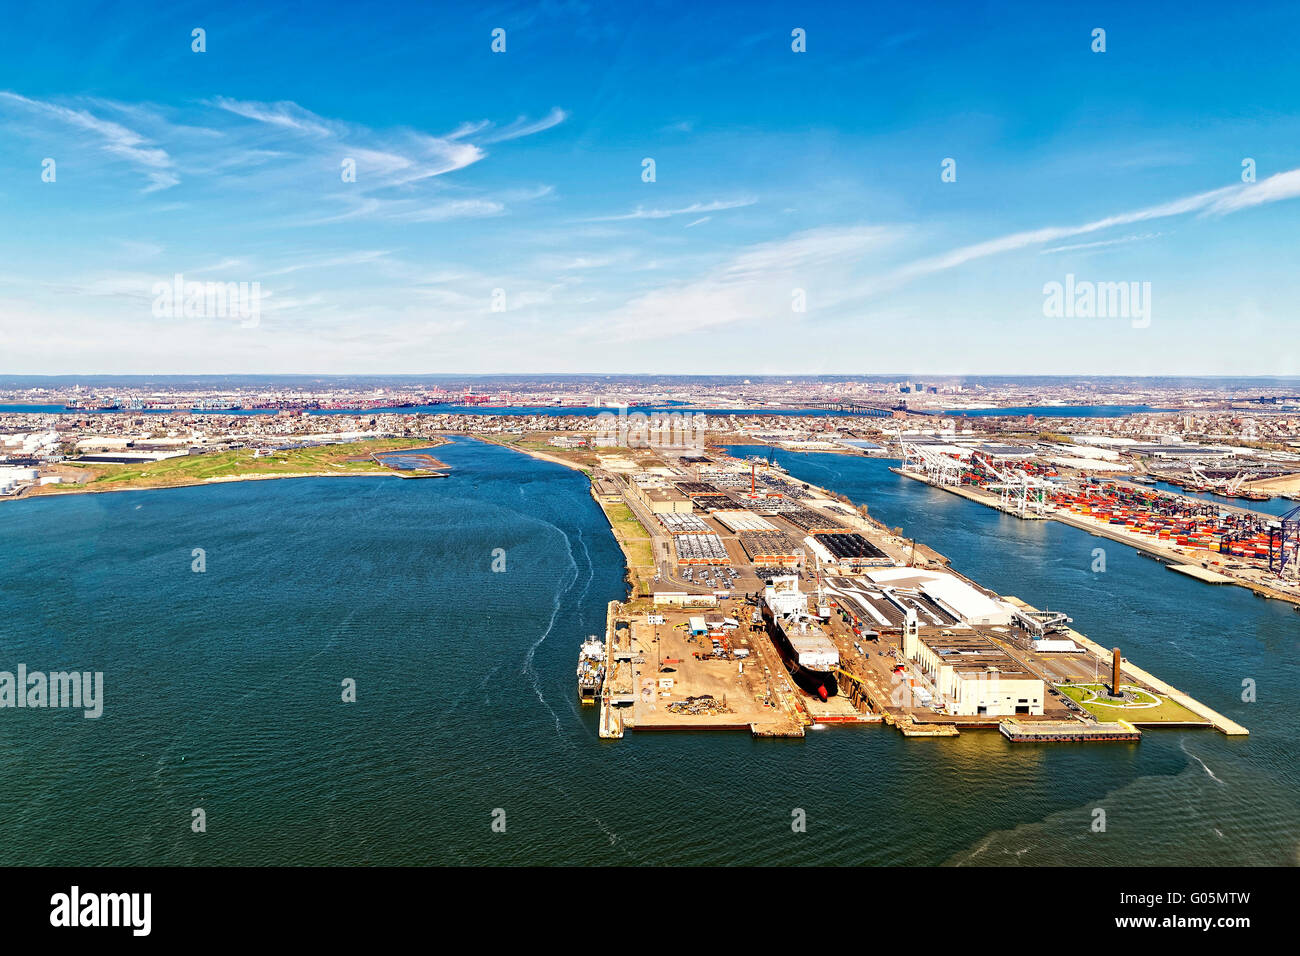 Bayonne, USA - April 25, 2015: Aerial view of Bayonne Dry Dock and Repair in Bayonne, New Jersey, USA. Global container Stock Photo